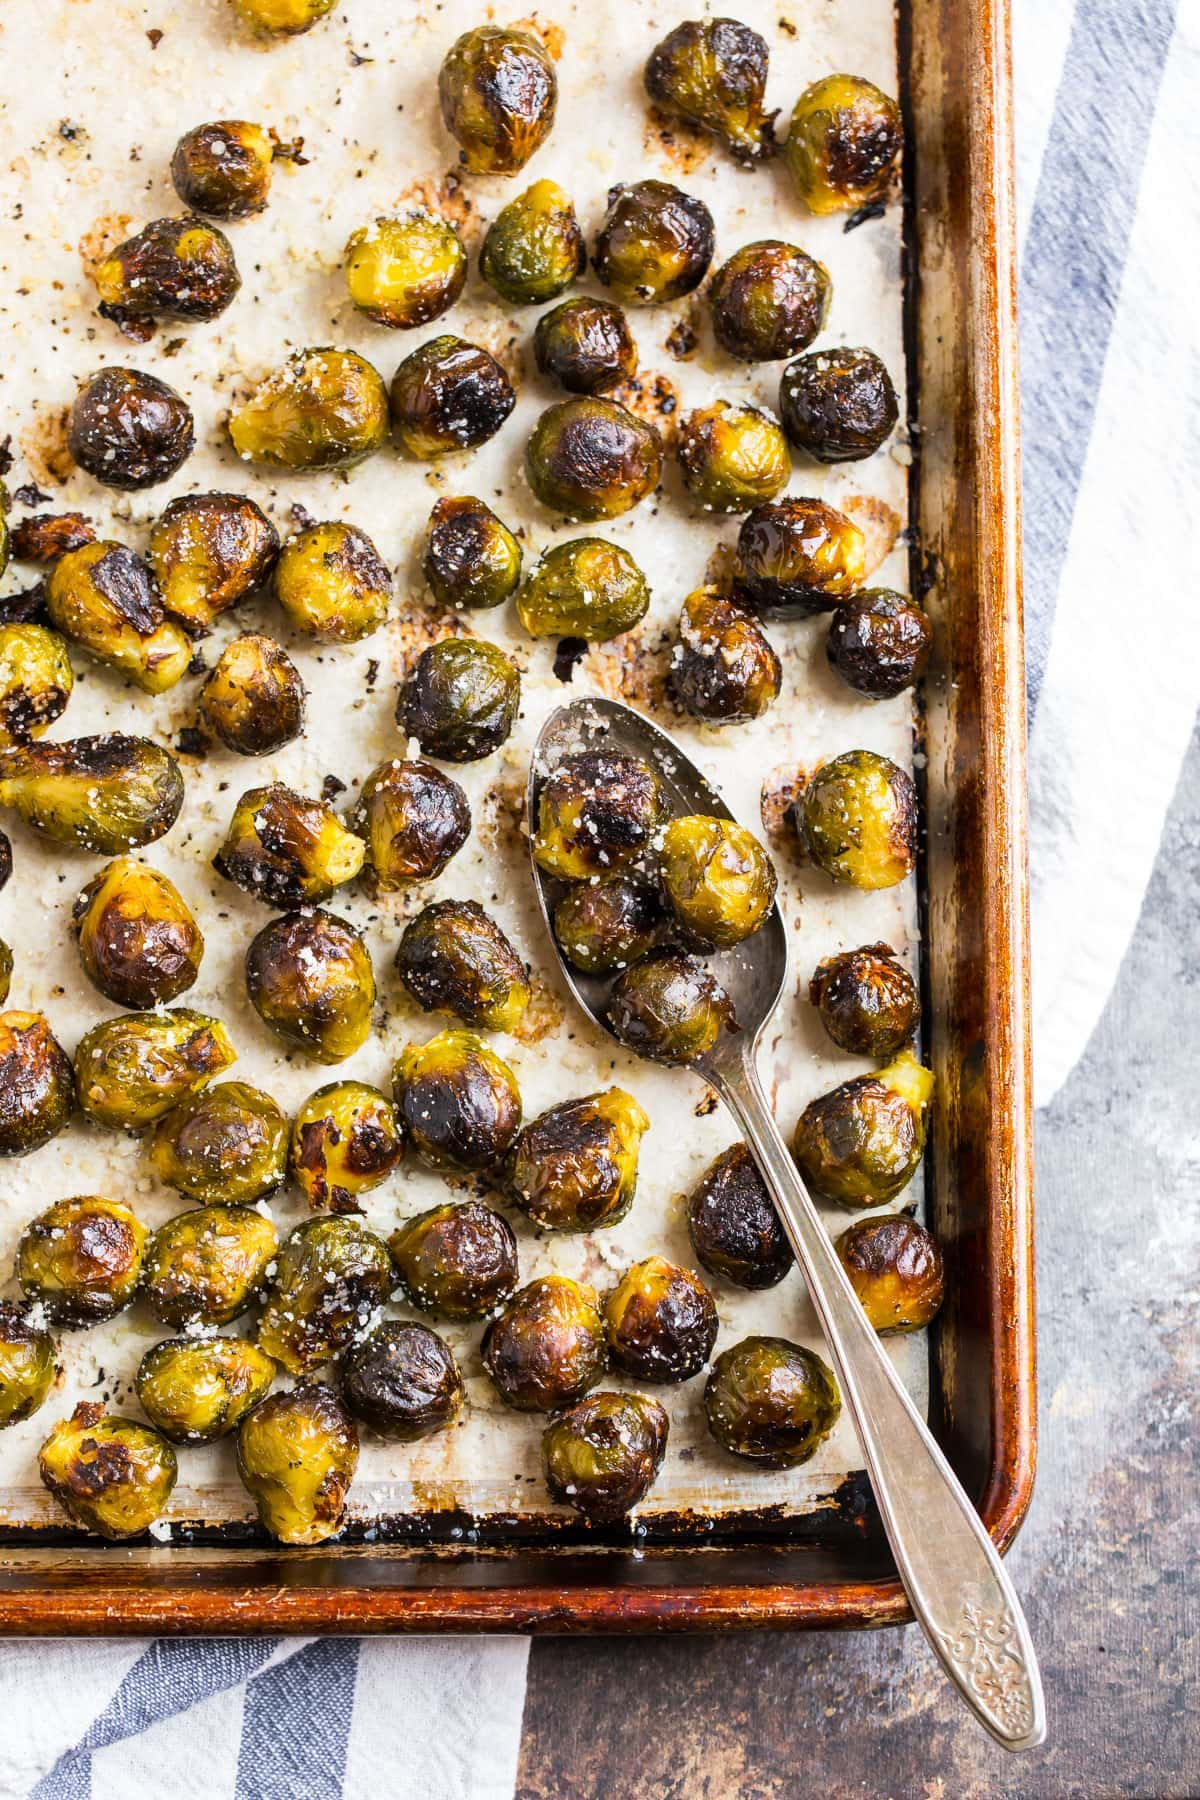 Roasted Frozen Brussels Sprouts Crispy And Easy Wellplated Com